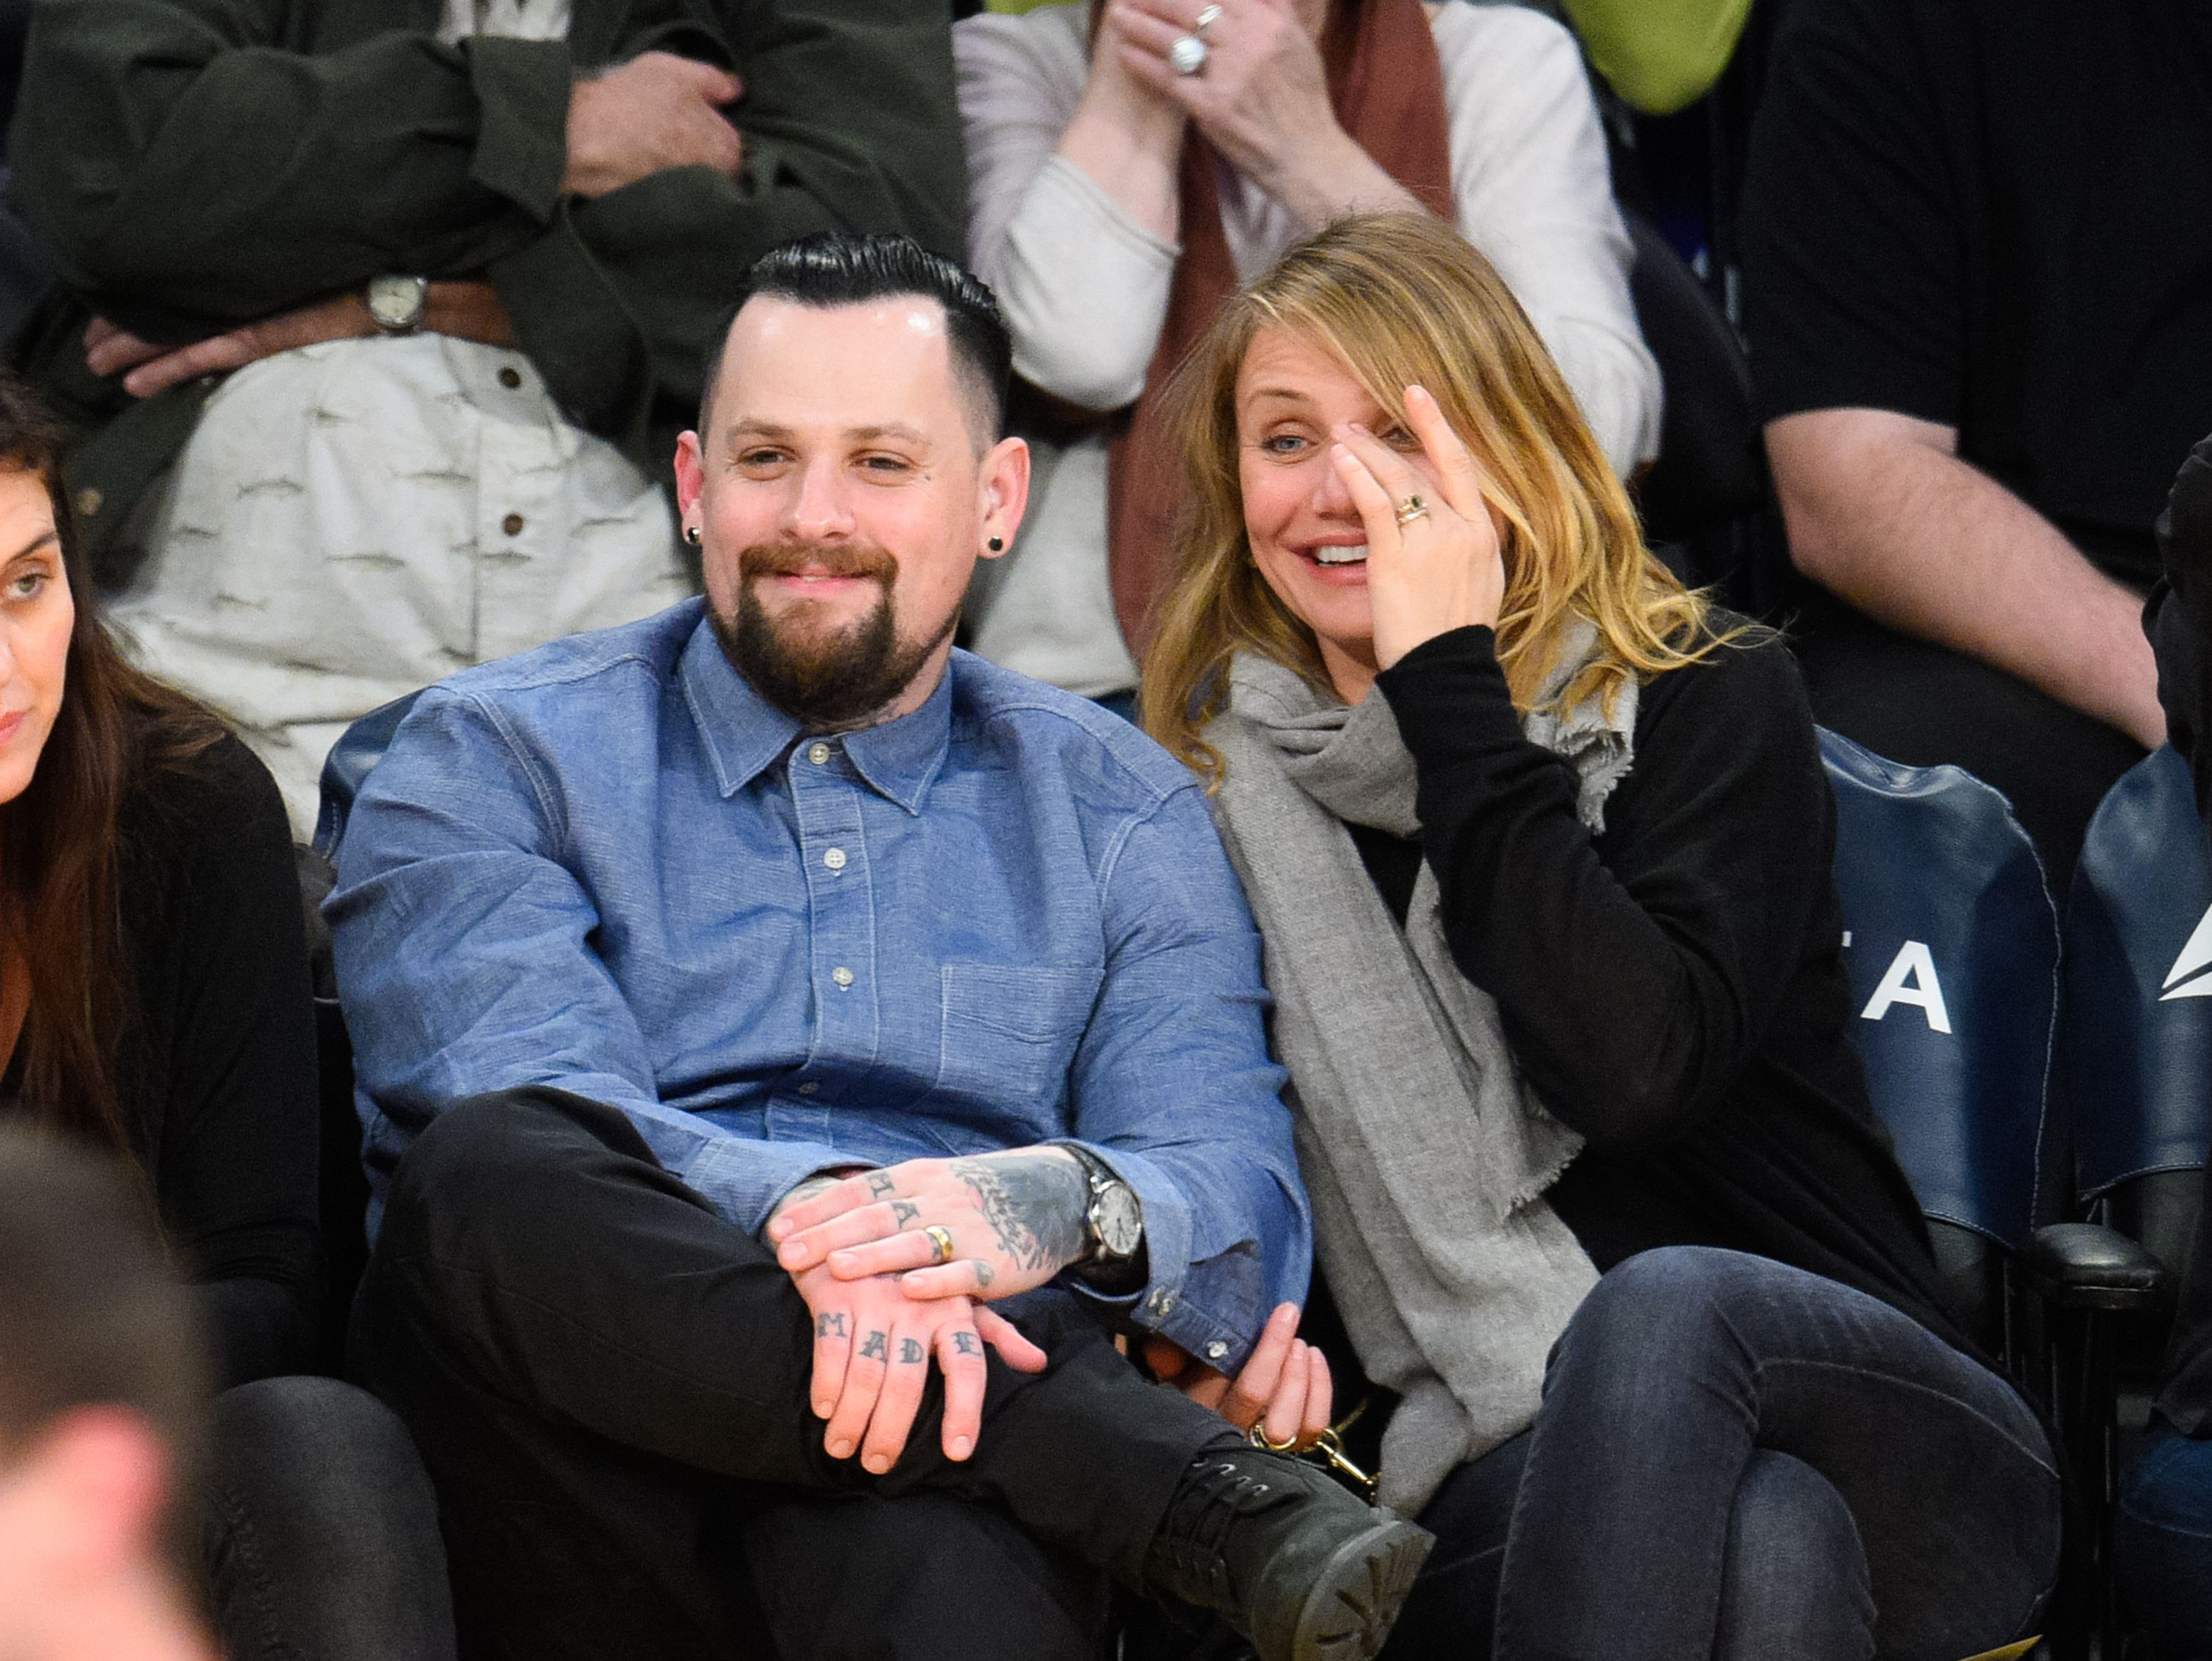 Benji Madden and Cameron Diaz at a basketball game held at Staples Center on January 27, 2015, in Los Angeles, California   Photo: Noel Vasquez/GC Images/Getty Images